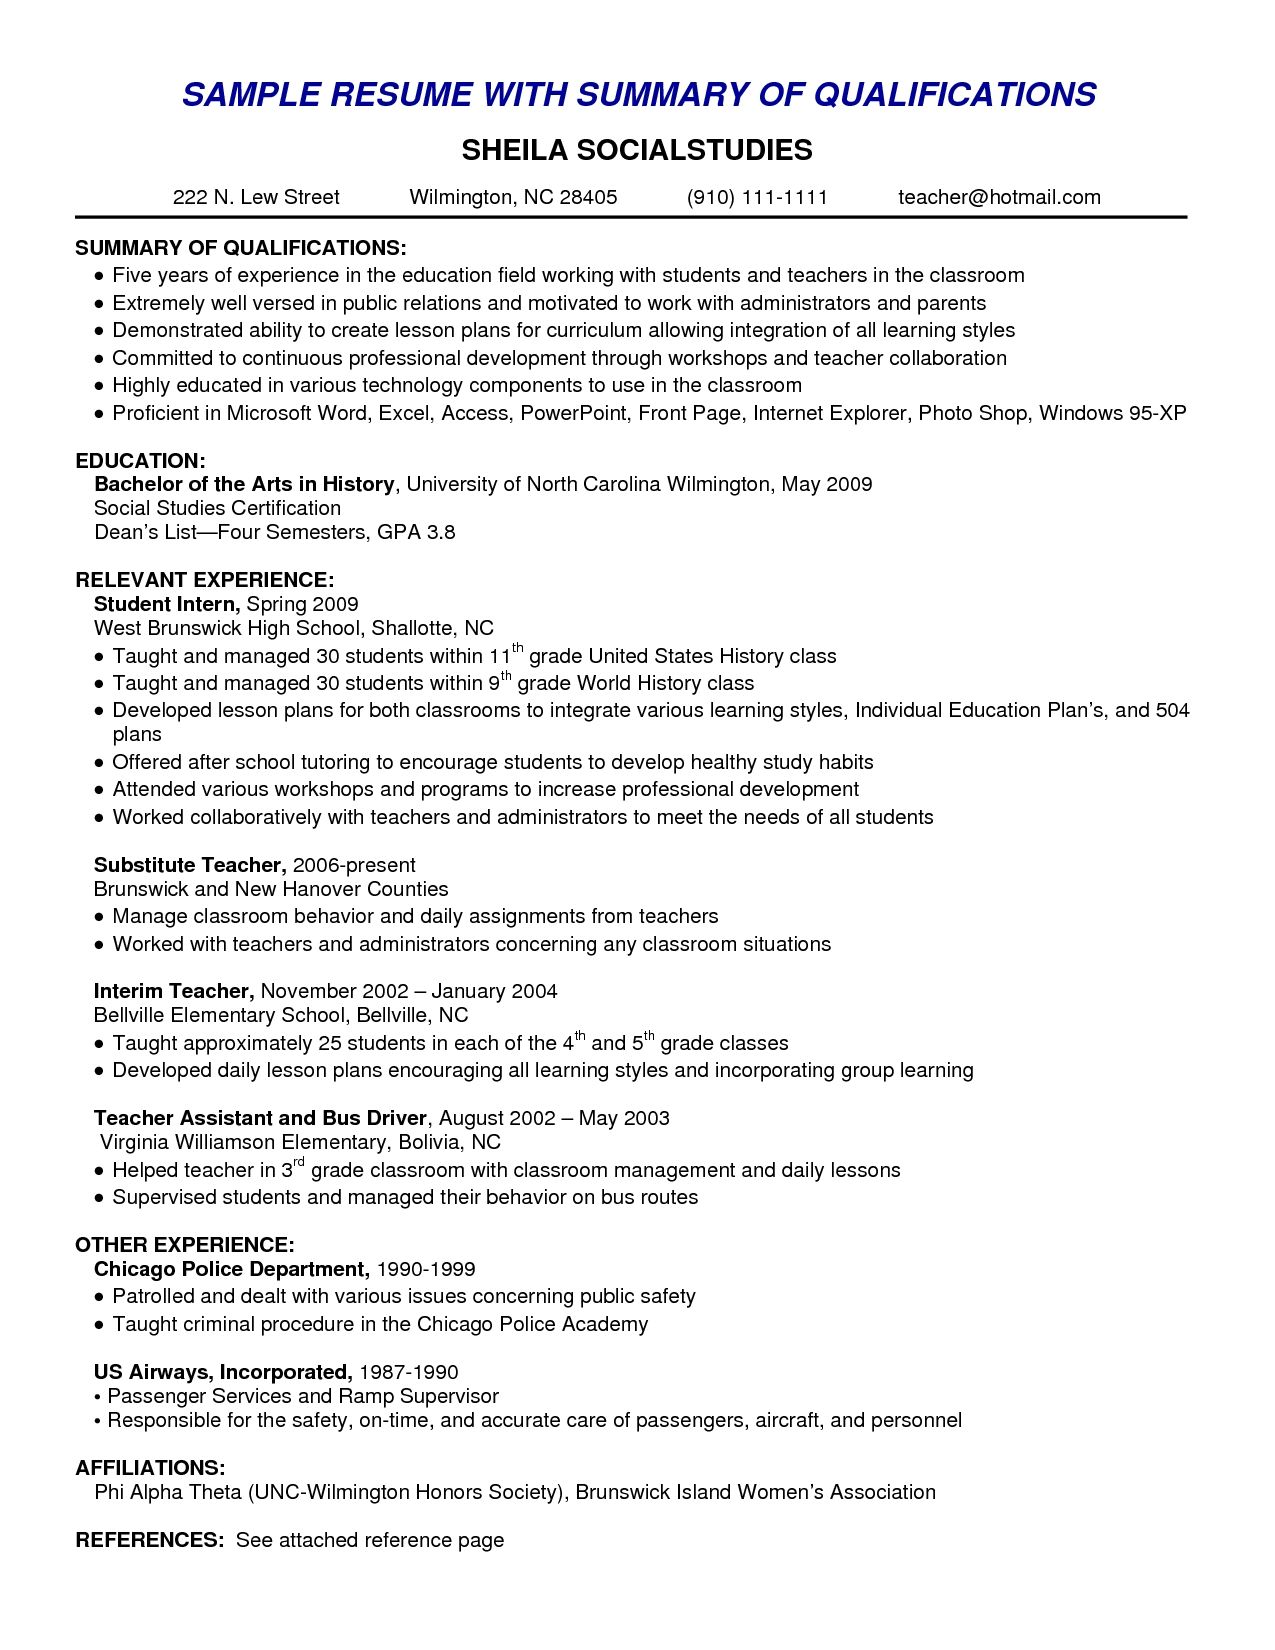 resume summary of qualifications